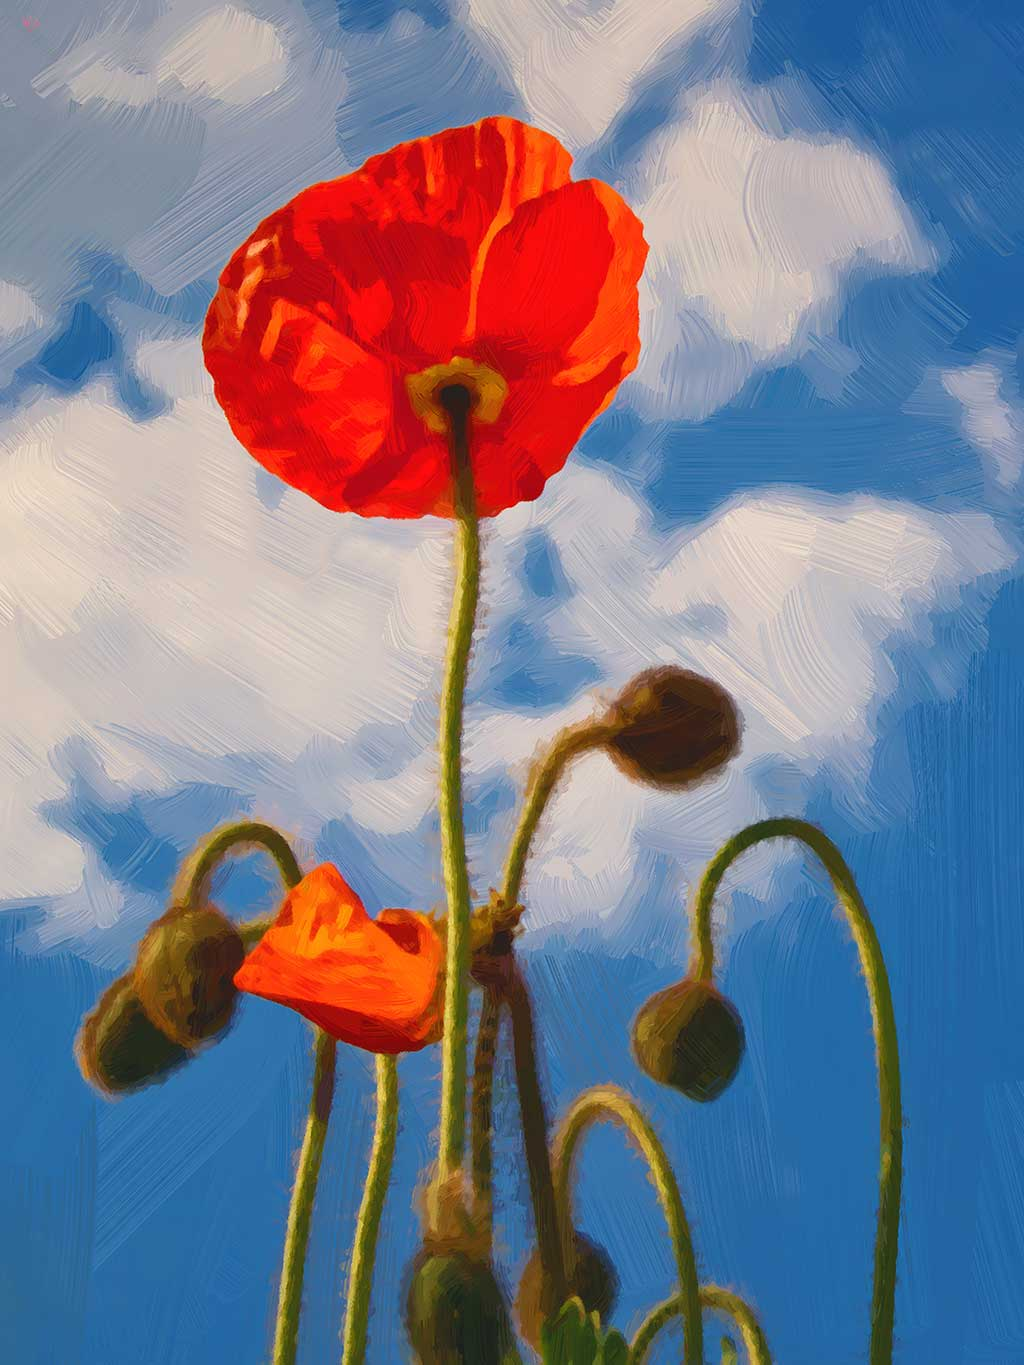 Red Poppy on Blue Sky, digital oil painting and art canvas print by Wieslaw Sadurski